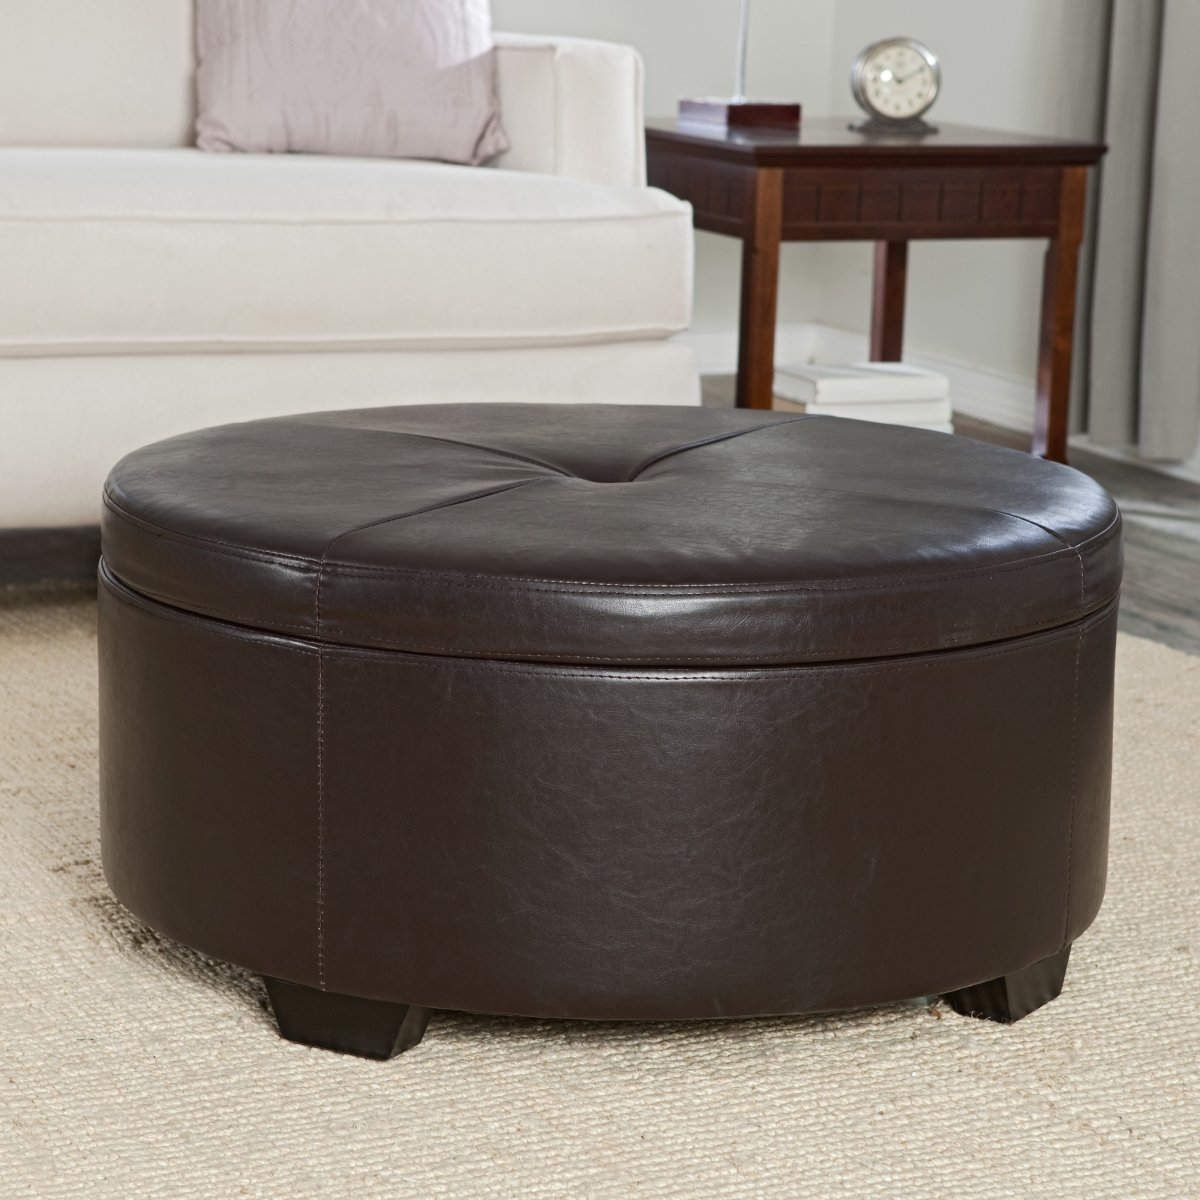 decorate-a-leather-ottoman-coffee-table-brown-stylish-round-leather-coffee-tables-round-coffee-tables-living-room (Image 2 of 10)